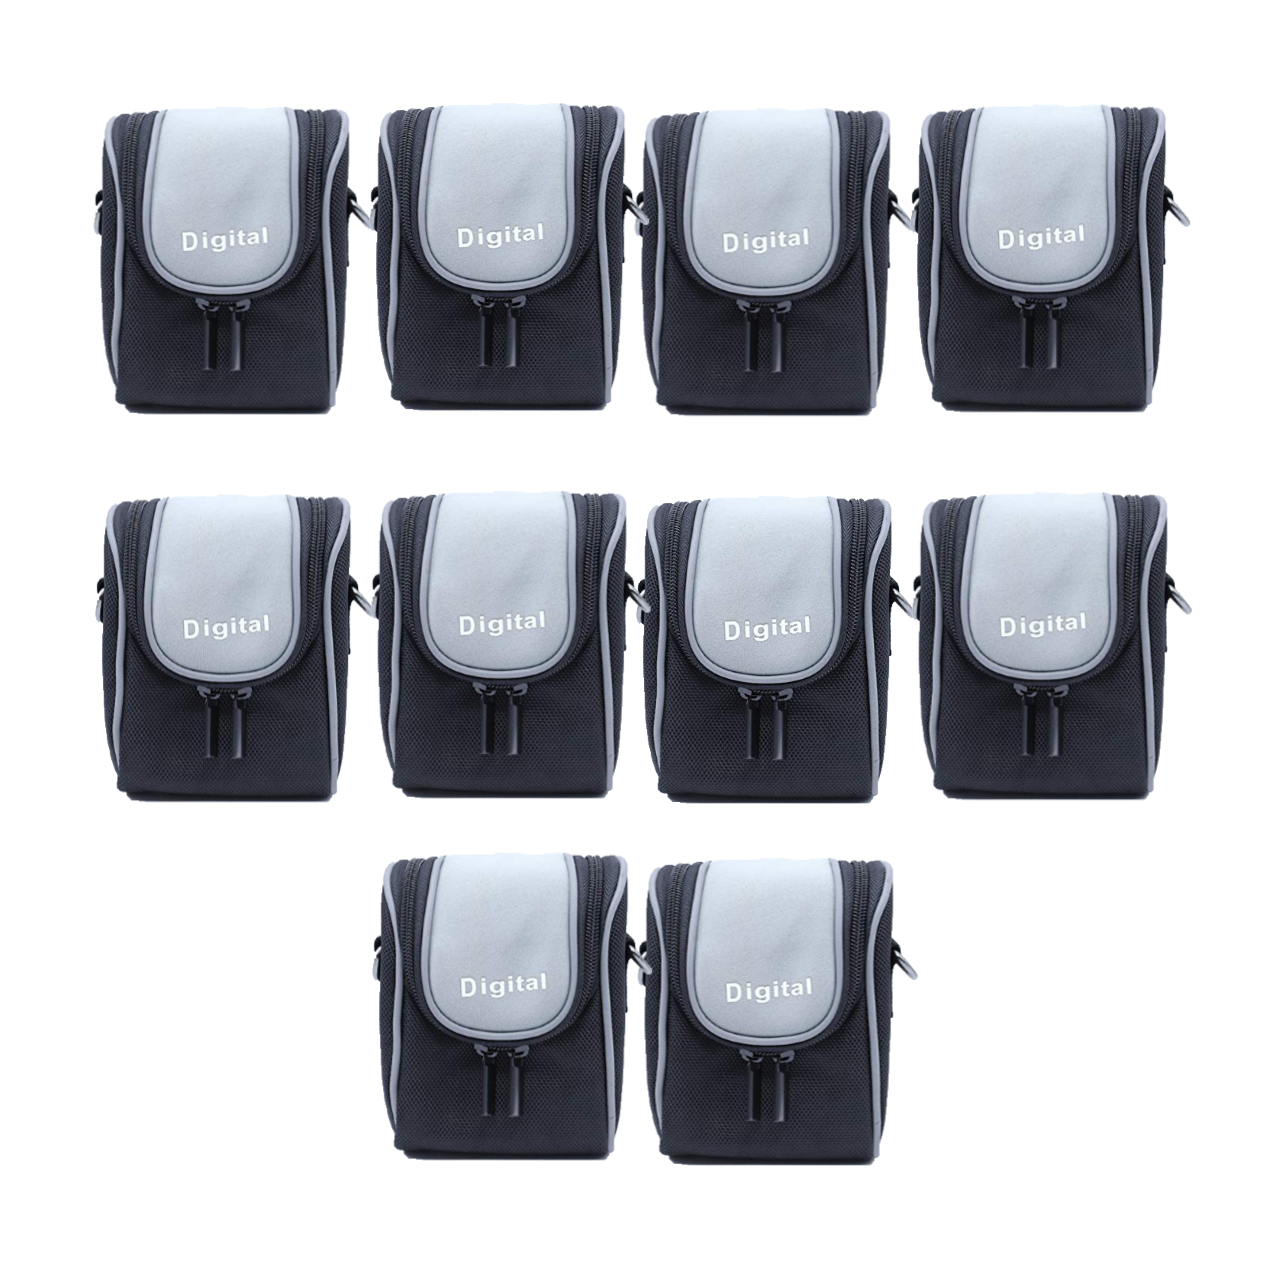 Solibag Durable Camera Case, Black -4004-2321 Pack Of 10Pcs Camcorder & Camera Accessories Camera Bags